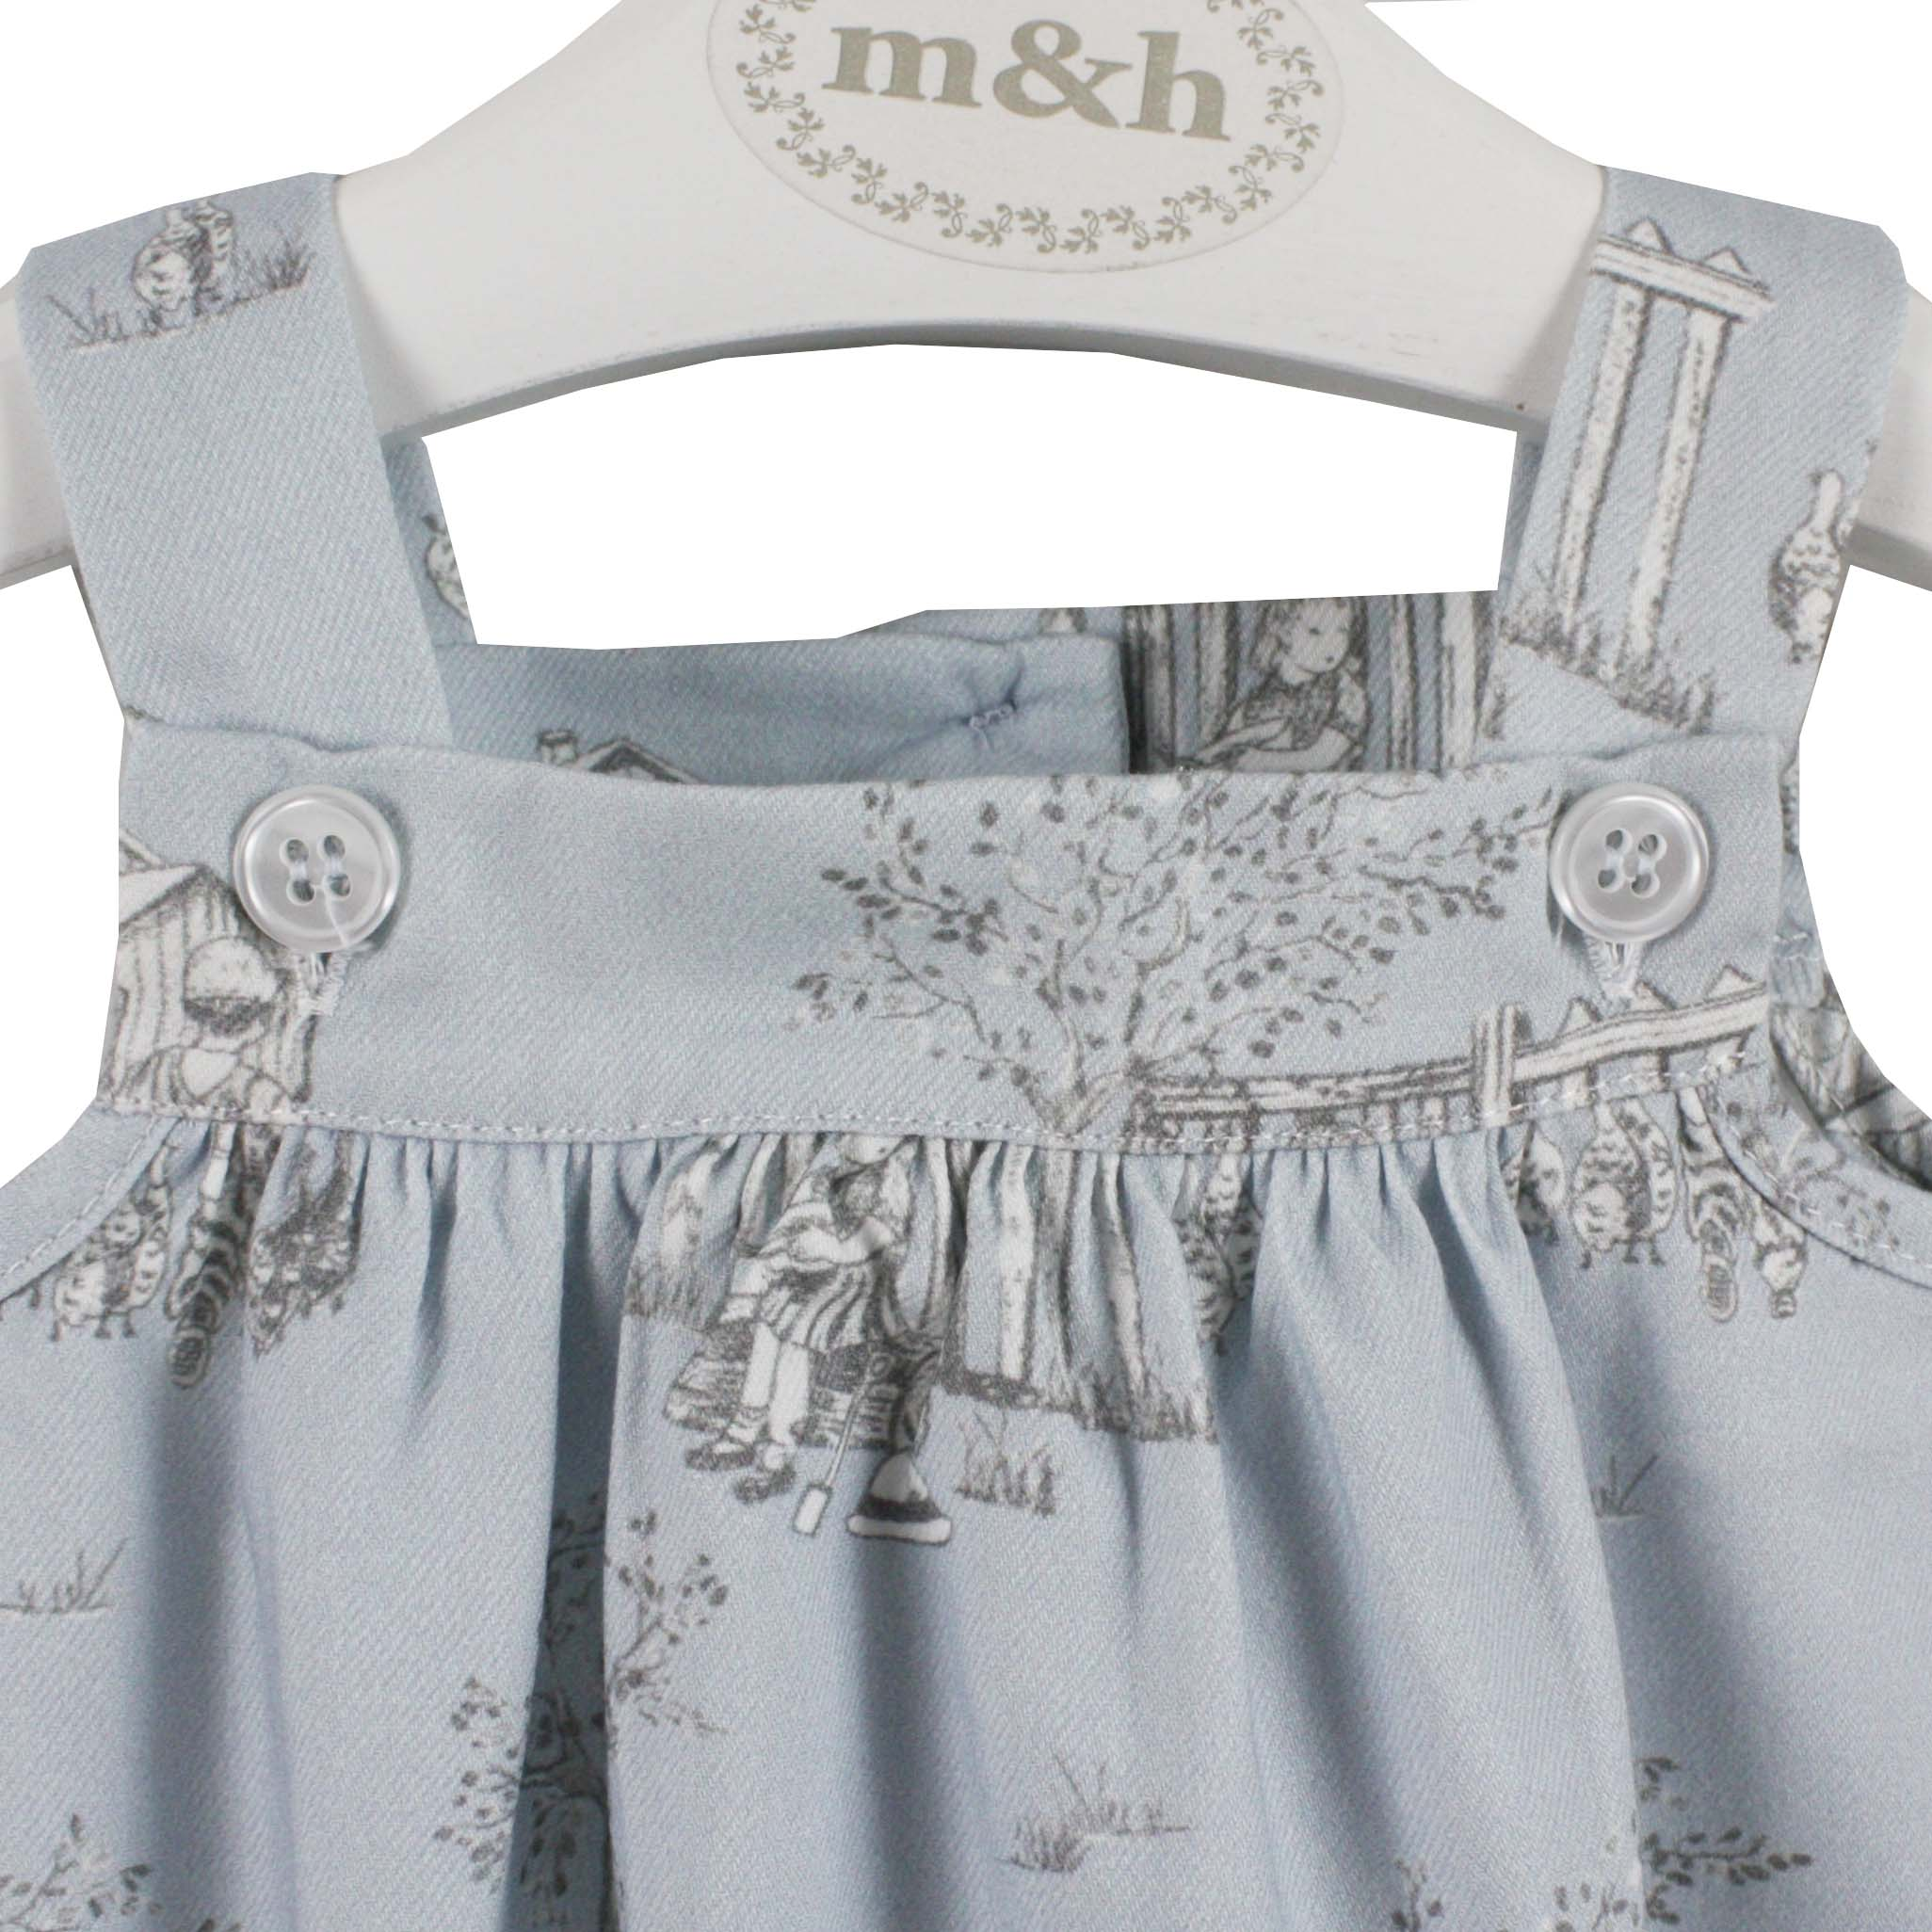 be17aa91a526 blue baby romper toile pattern · baby romper blue